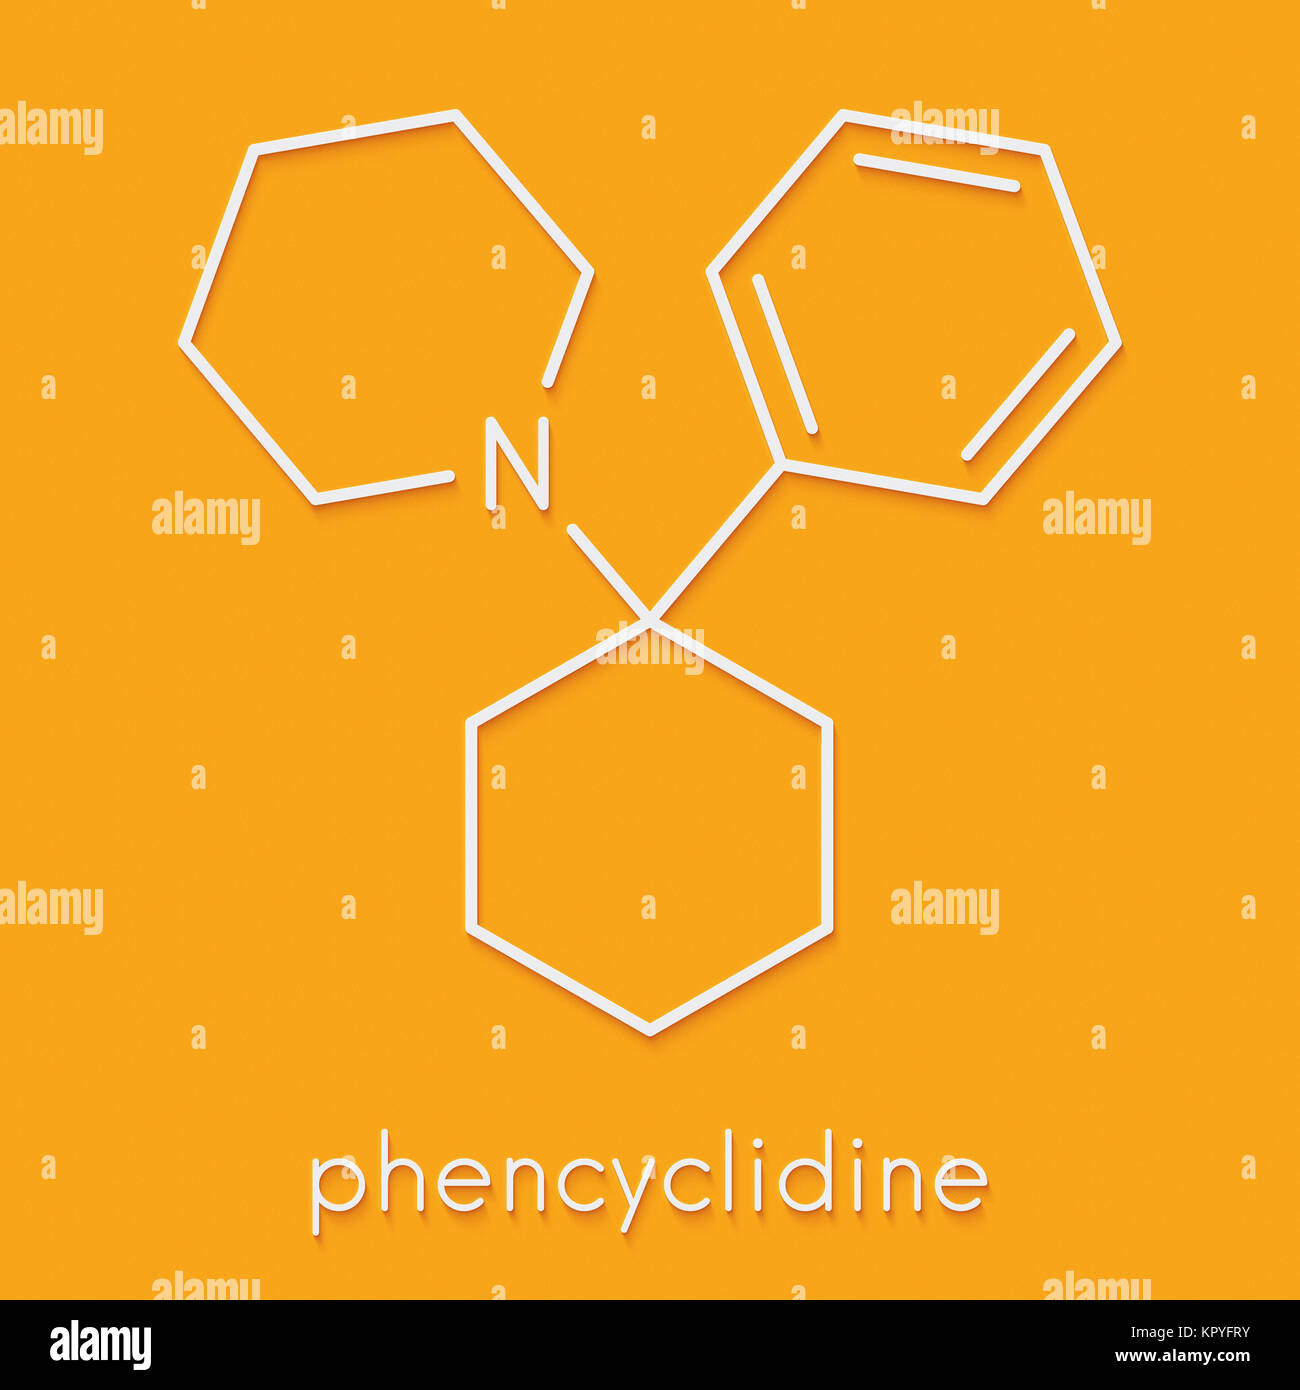 Phencyclidine Pcp Angel Dust Hallucinogenic Drug Molecule Stock